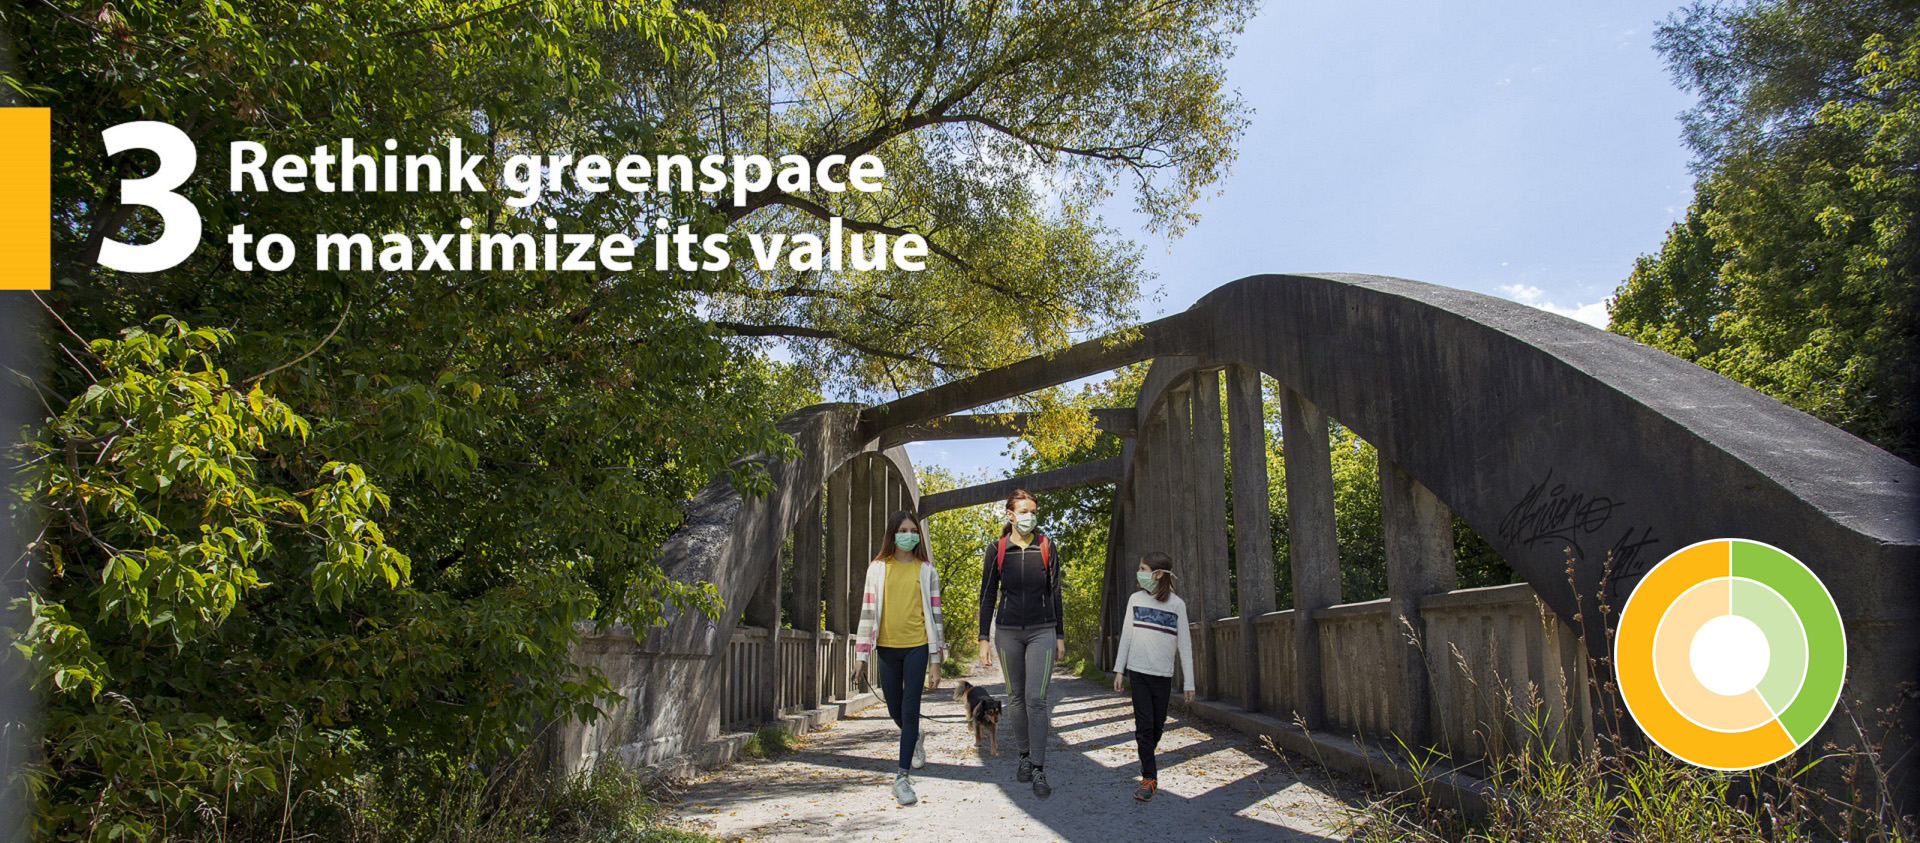 TRCA Strategic Goal 3 Rethink greenspace to maximize its value